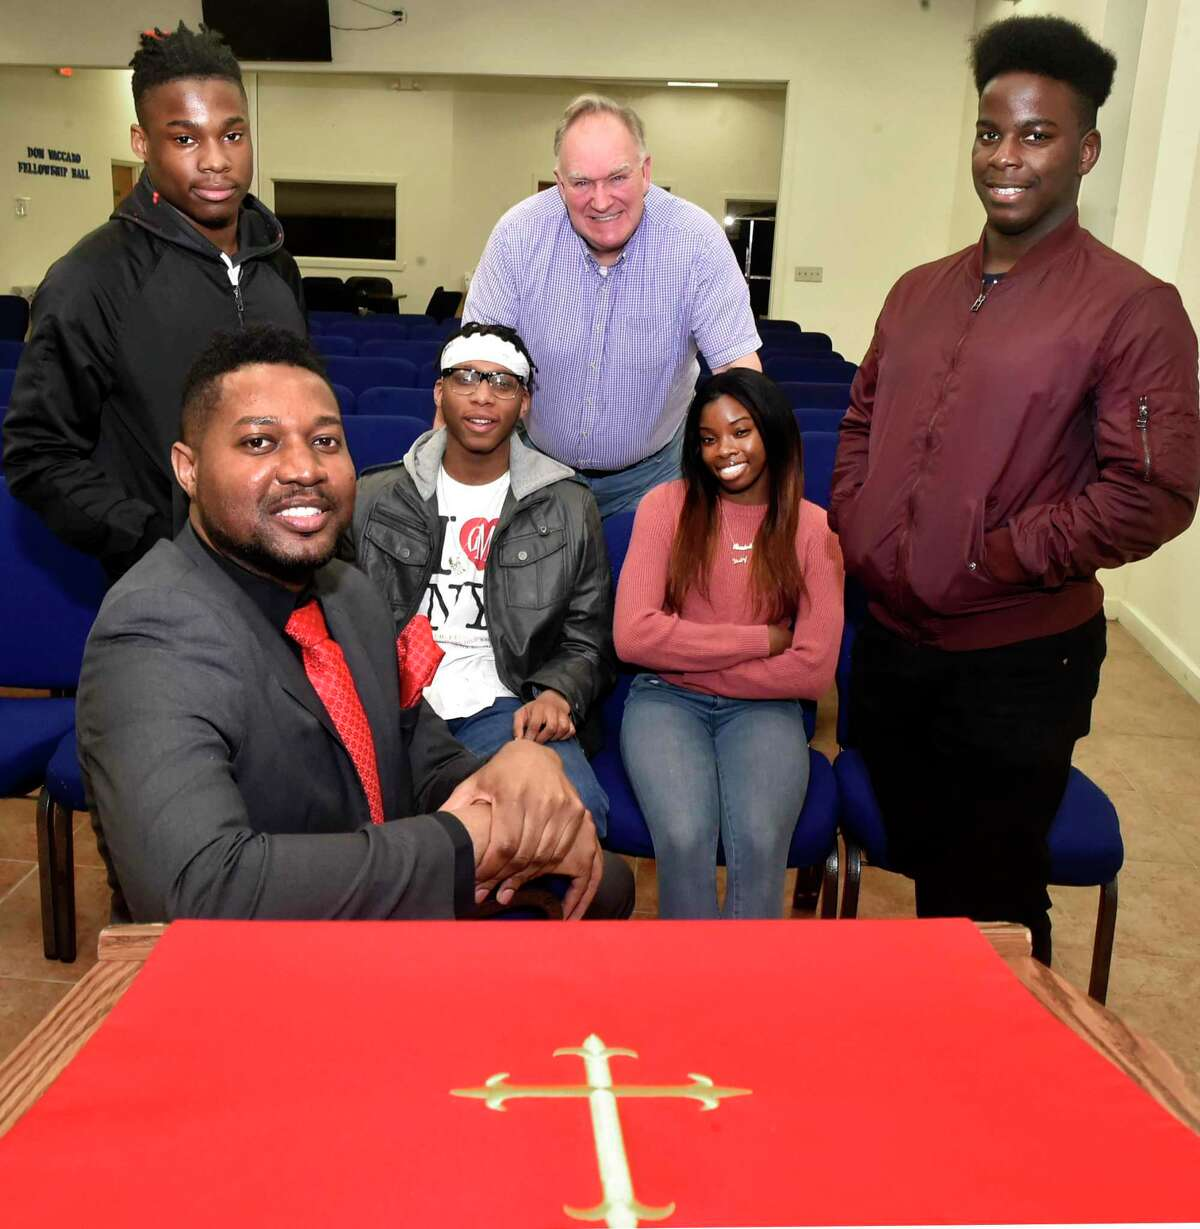 Reverend Herron Gaston, Yale Divinity School Associate Director of Admissions and Recruitment and Senior Pastor at Summerfield United Methodist Church in Bridgeport, sitting front, who organized Youth With A Purpose, sitting with participants.